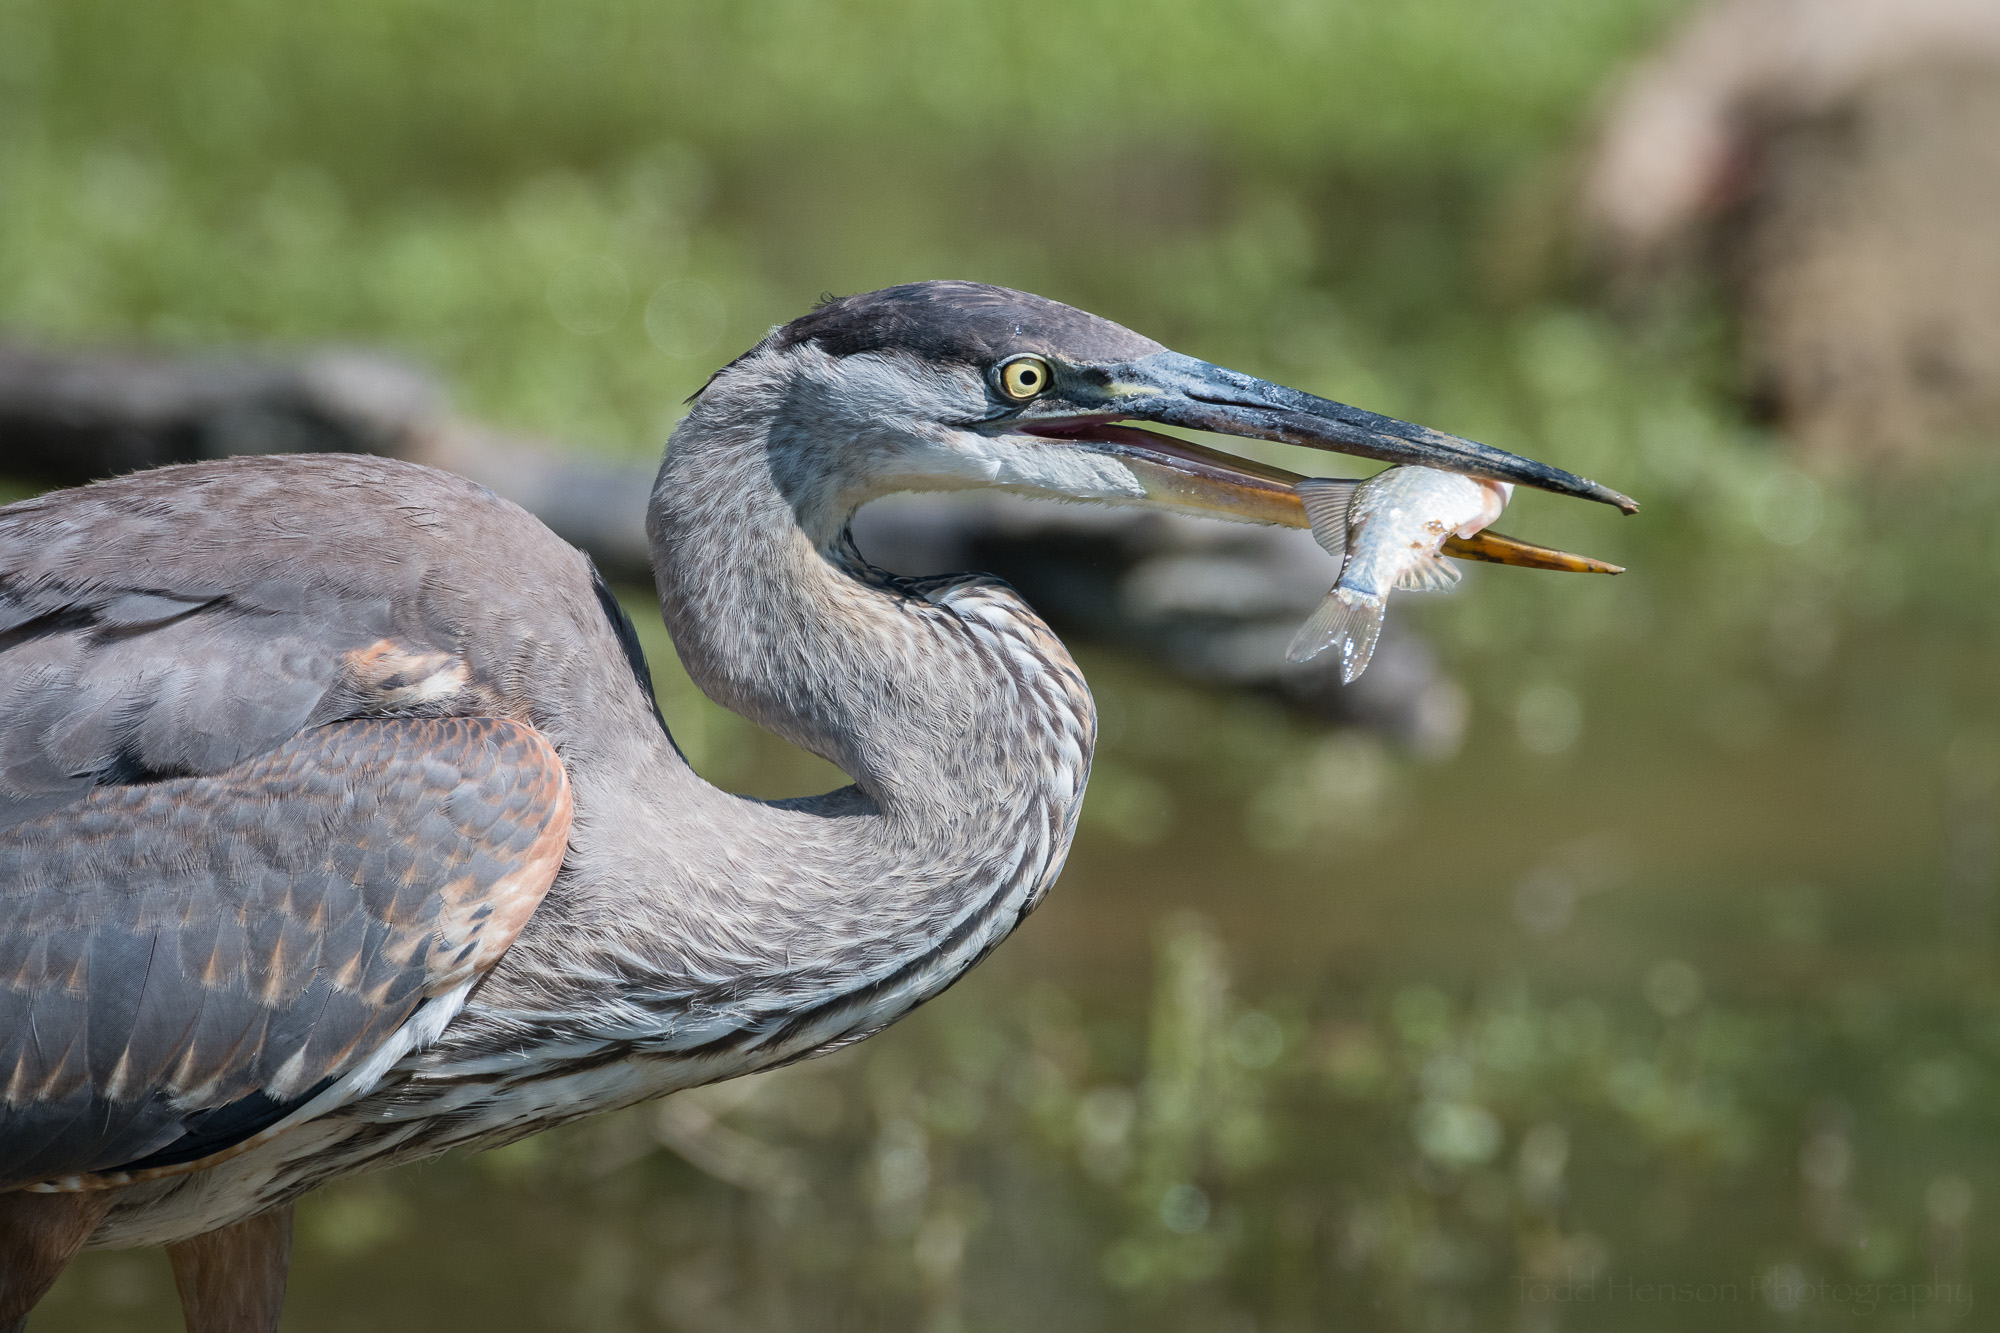 This view shows the fish just a little better as the Great Blue Heron opens its beak just a bit wider.